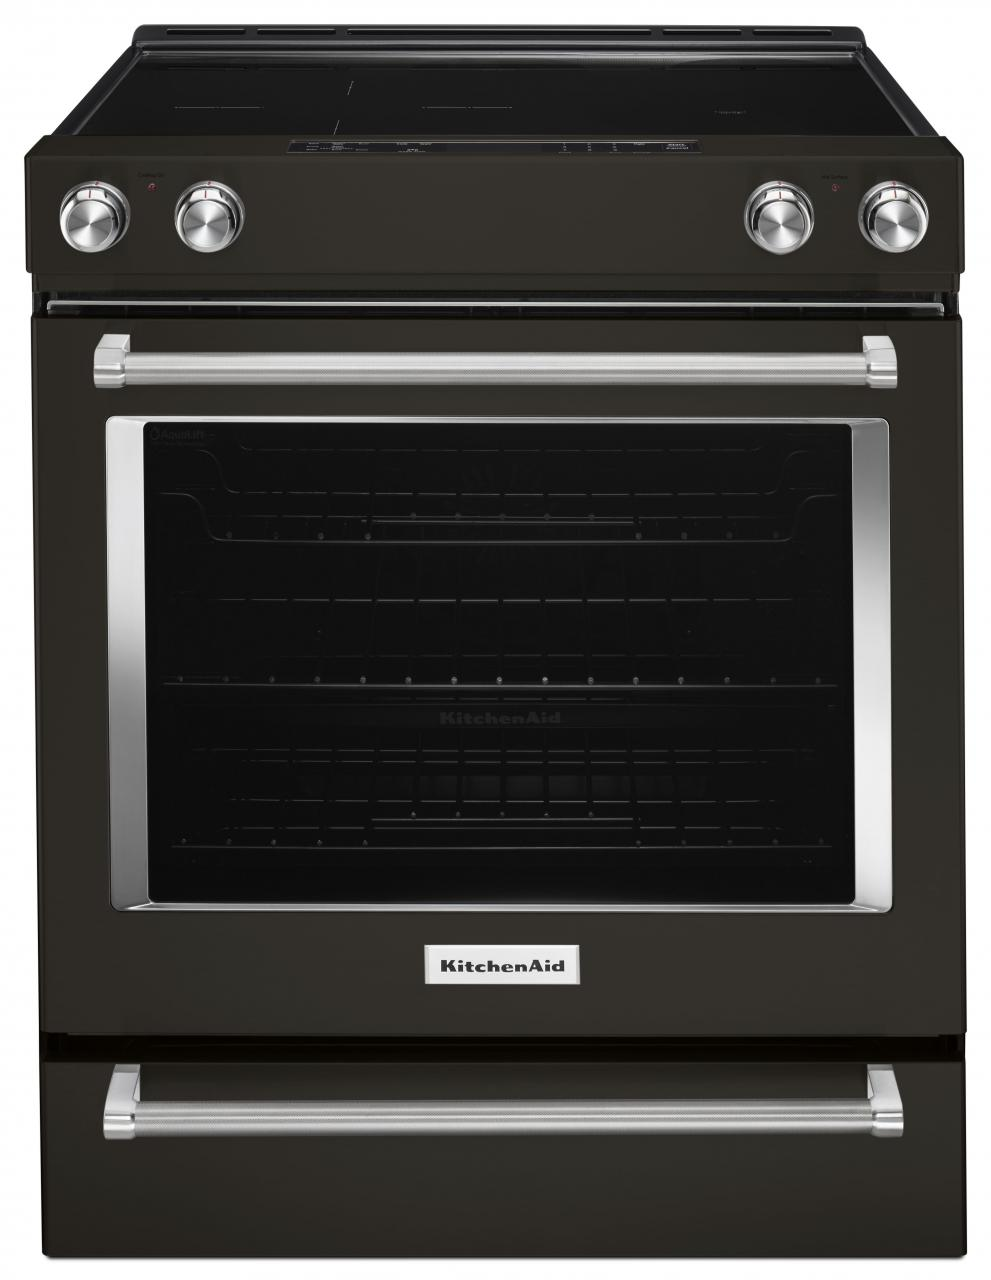 Electric Oven Making Humming Noise